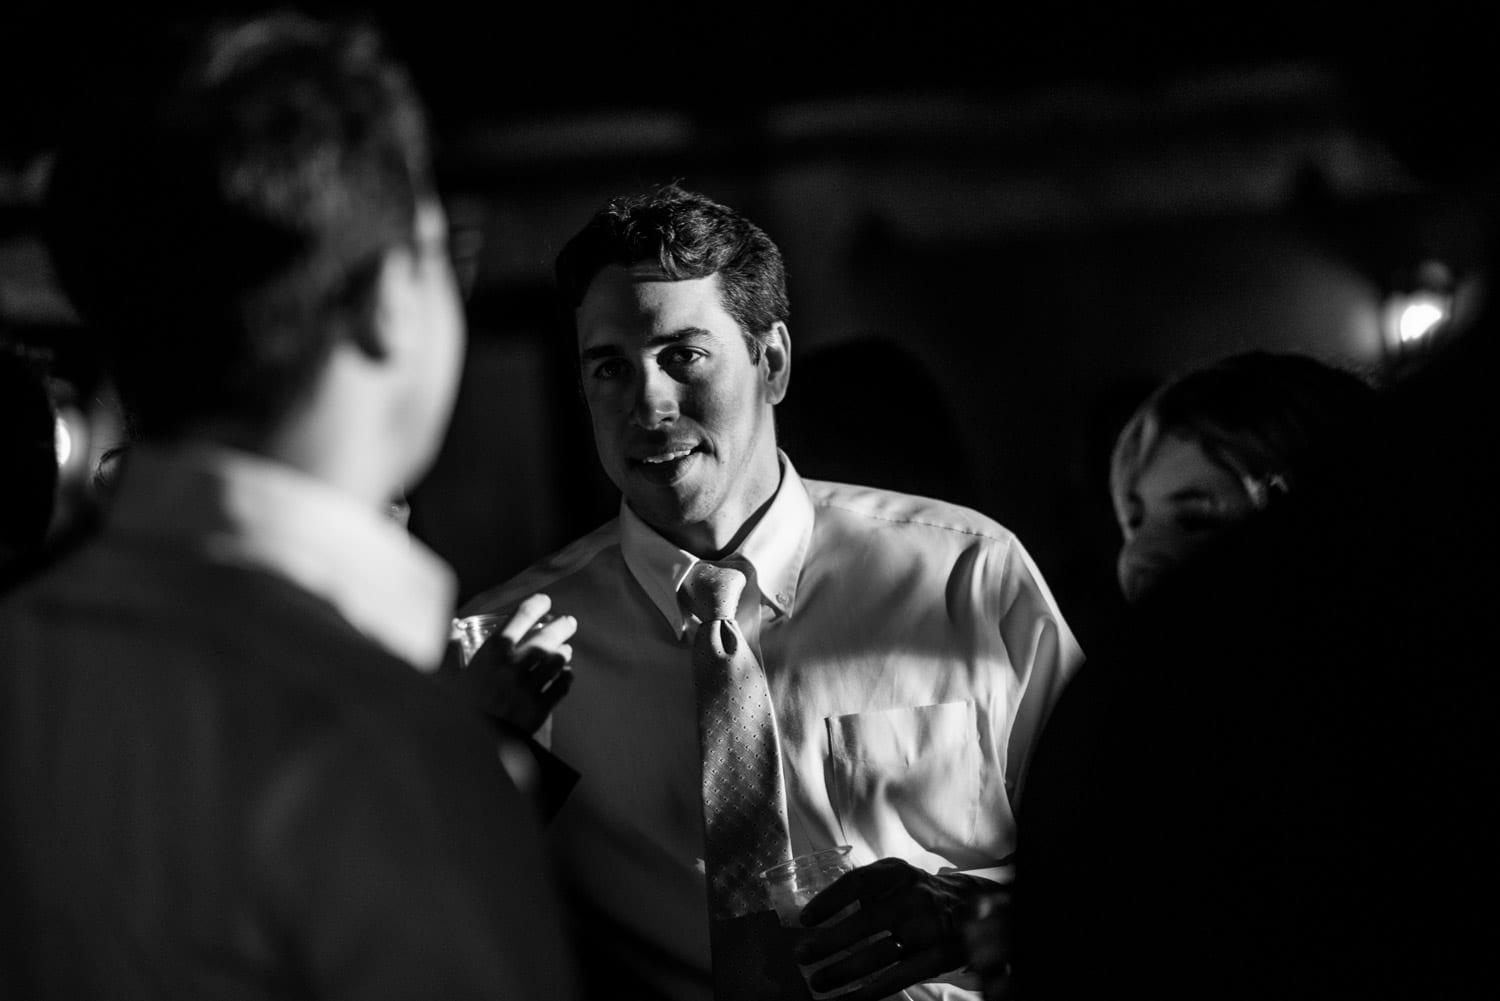 Black and white wedding guest photography